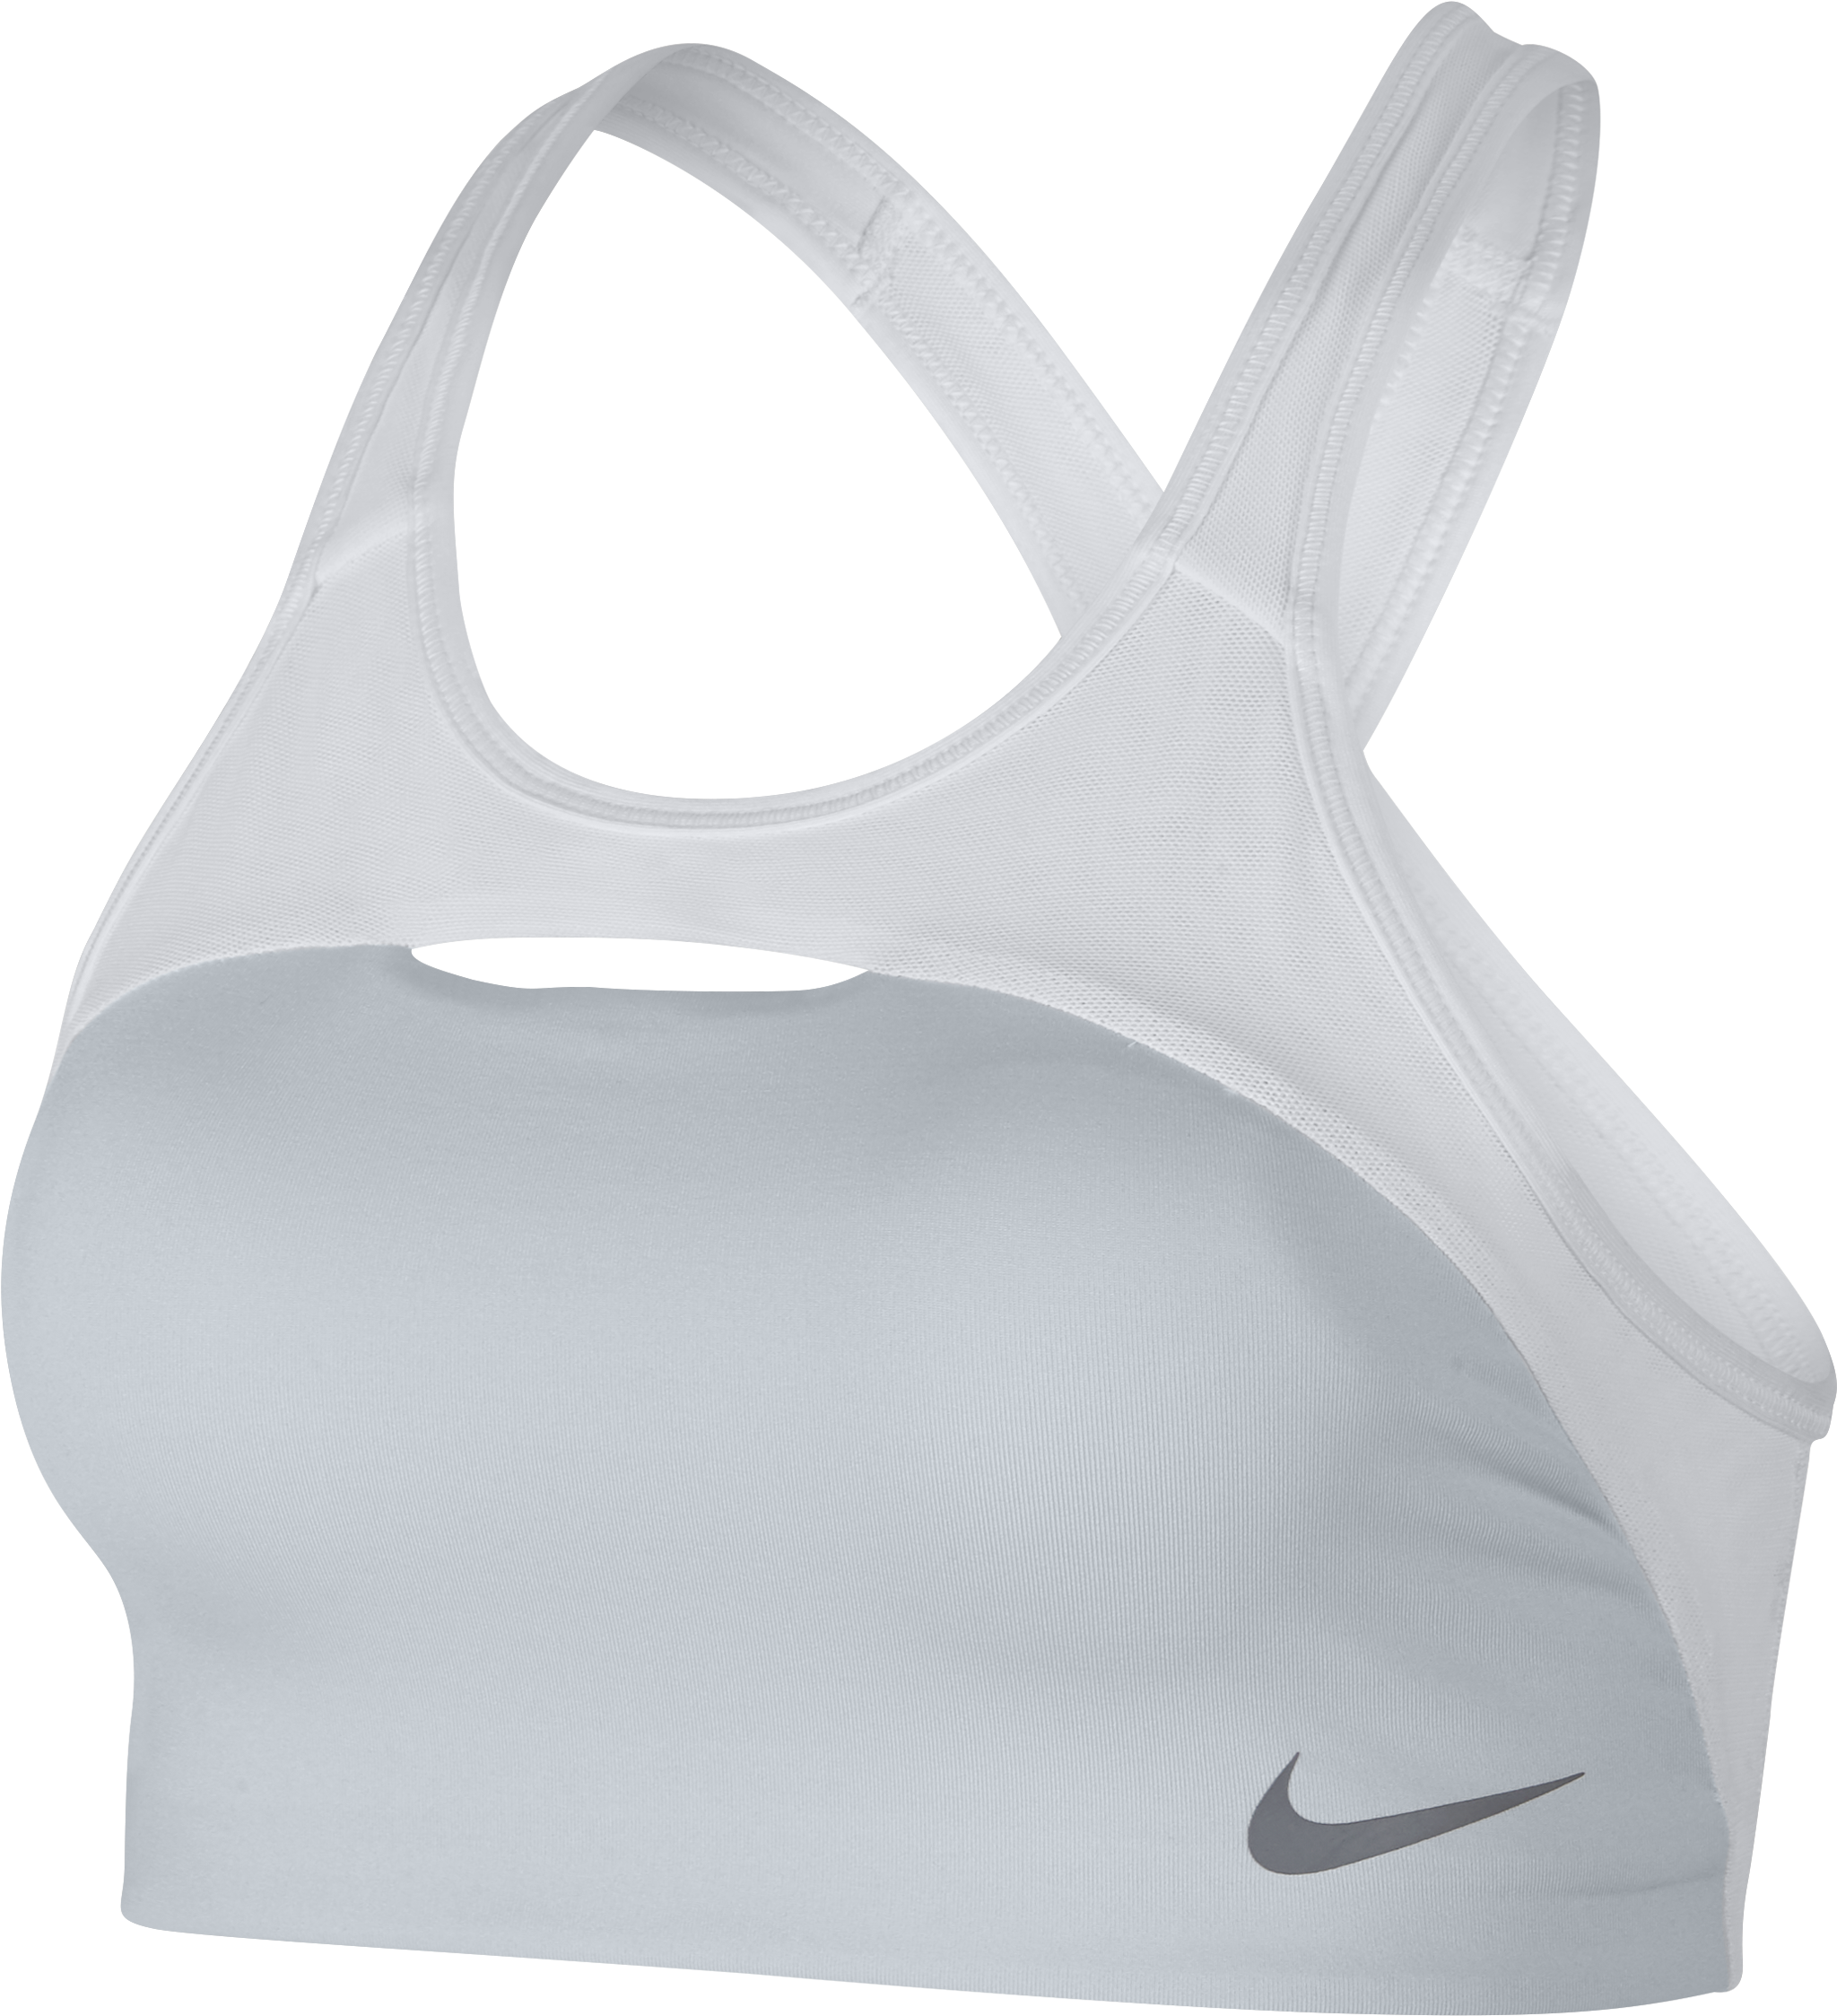 Download Add To Wishlist Loading - Sports Bra - Full Size PNG Image ... e9cd3076eb6a8